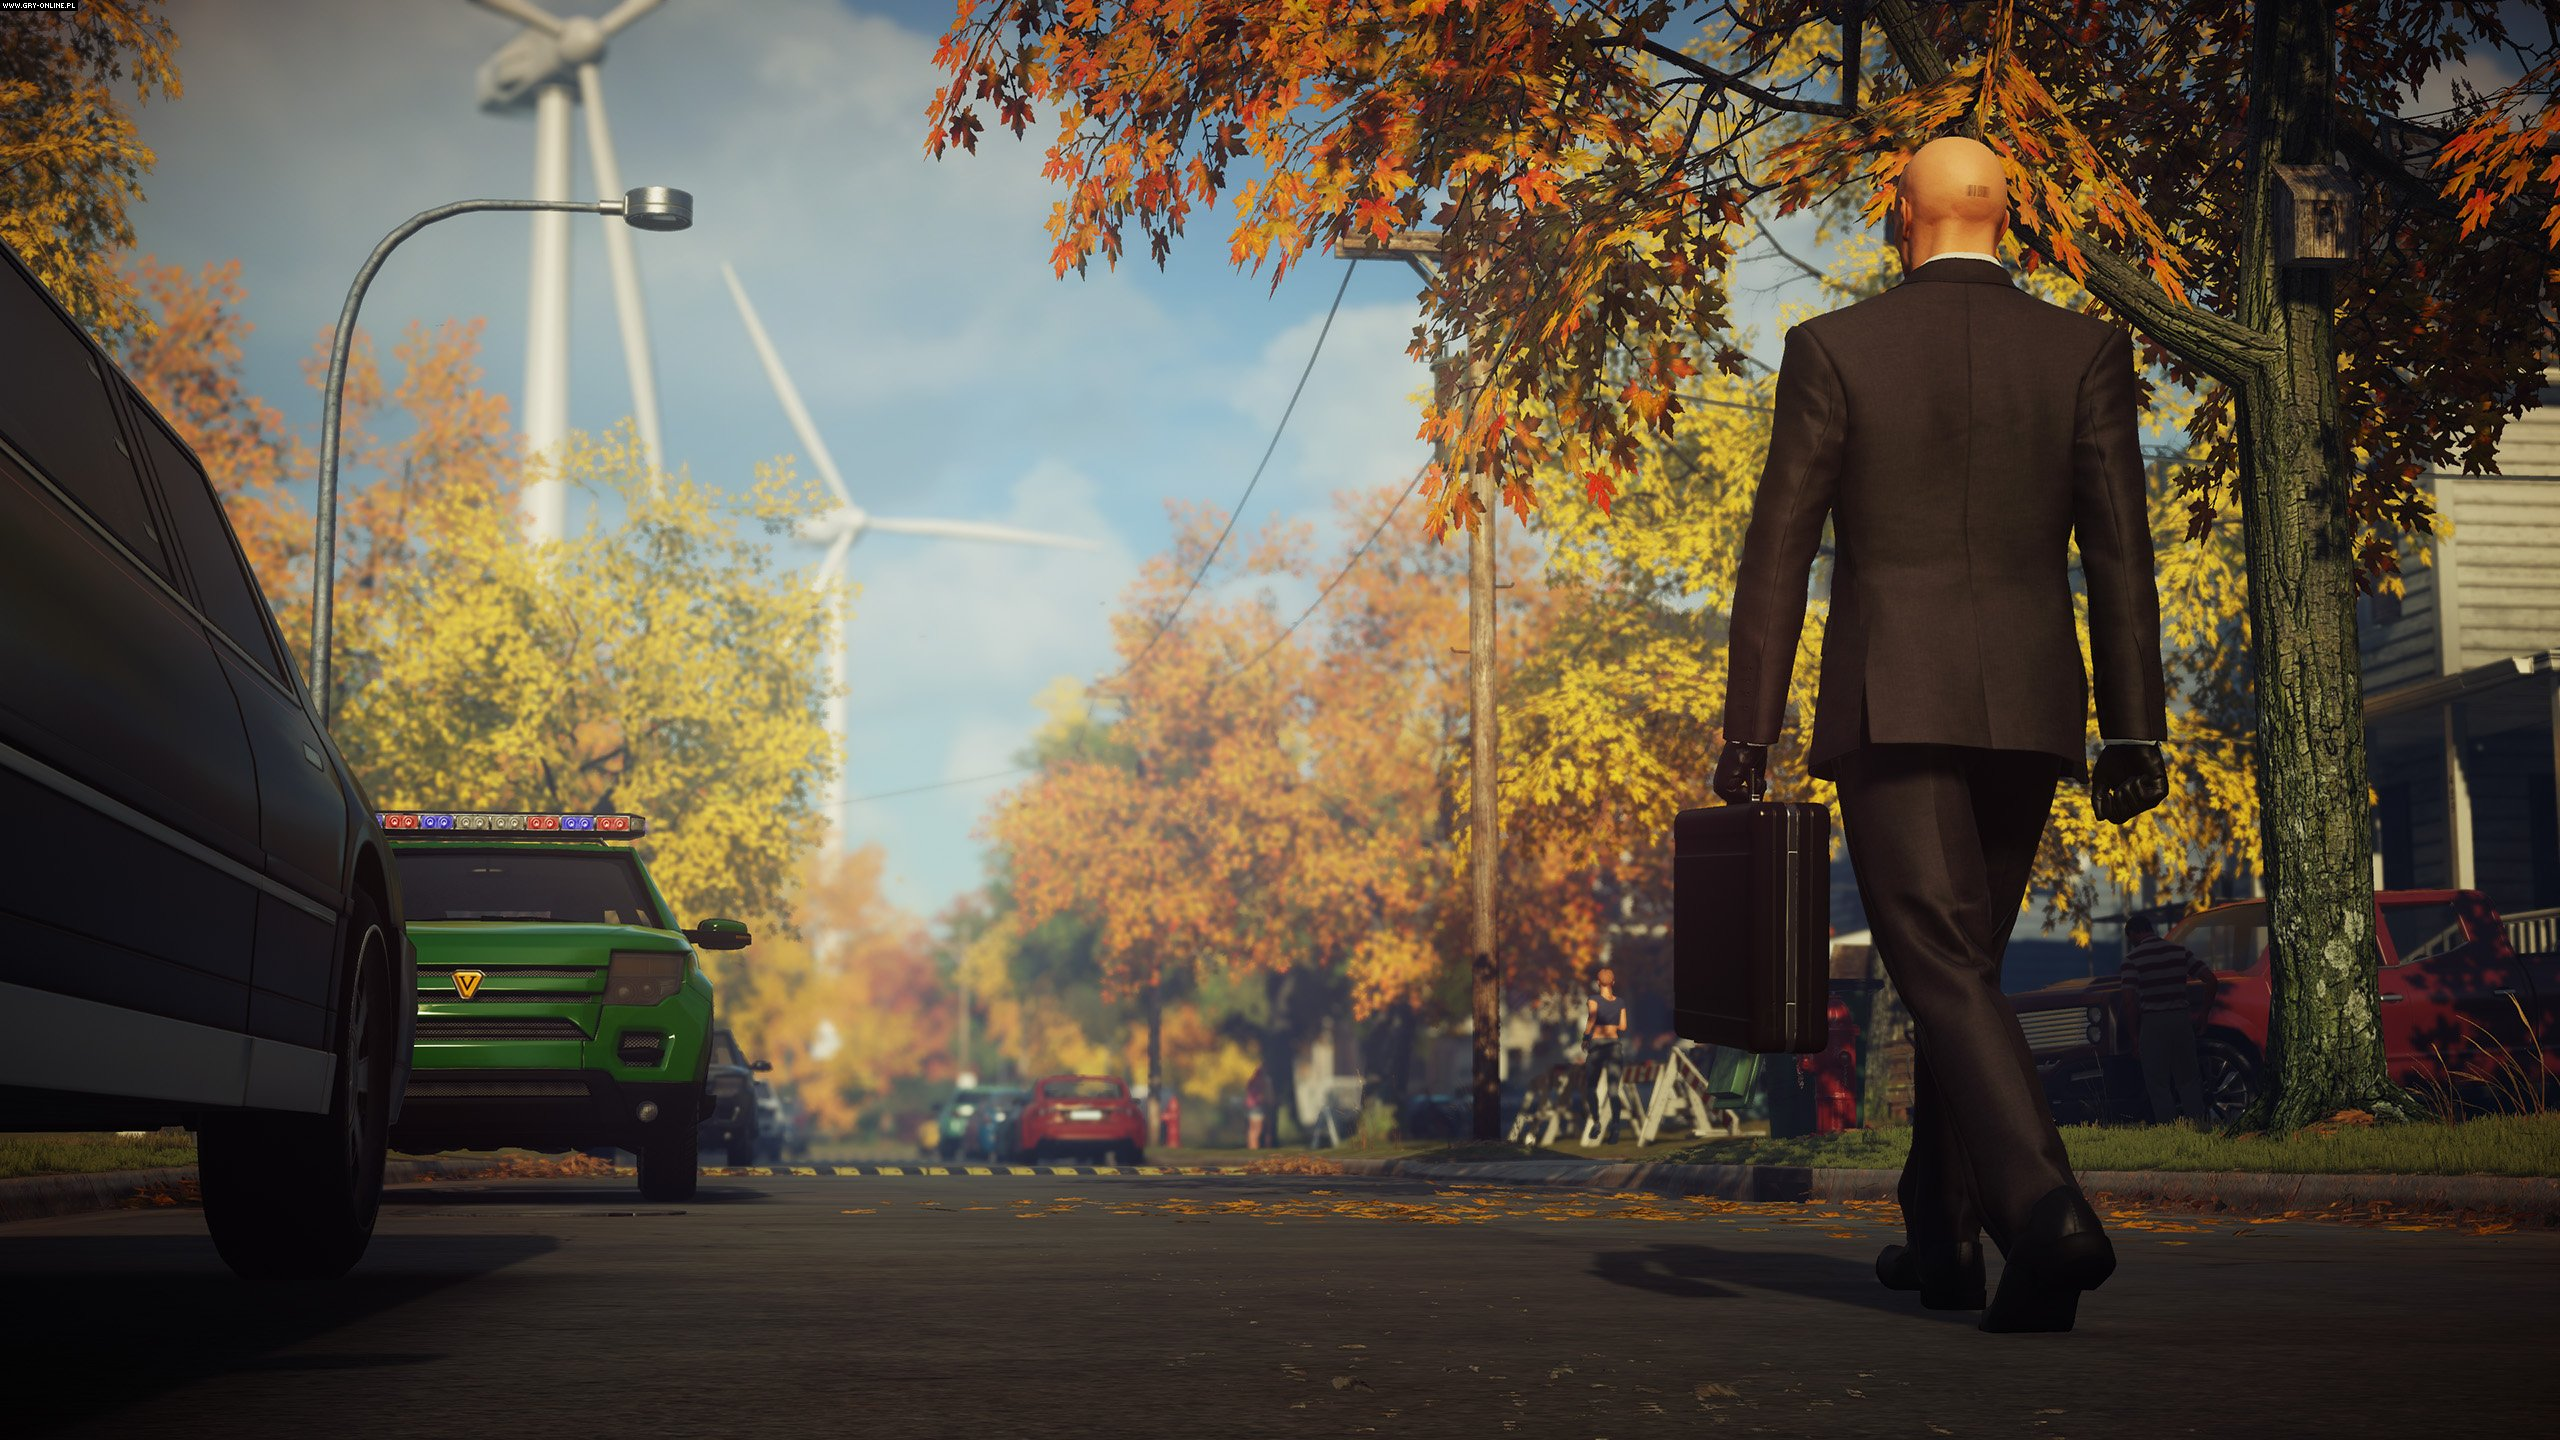 Hitman 2 PC, PS4, XONE Games Image 2/26, IO Interactive, Warner Bros. Interactive Entertainment